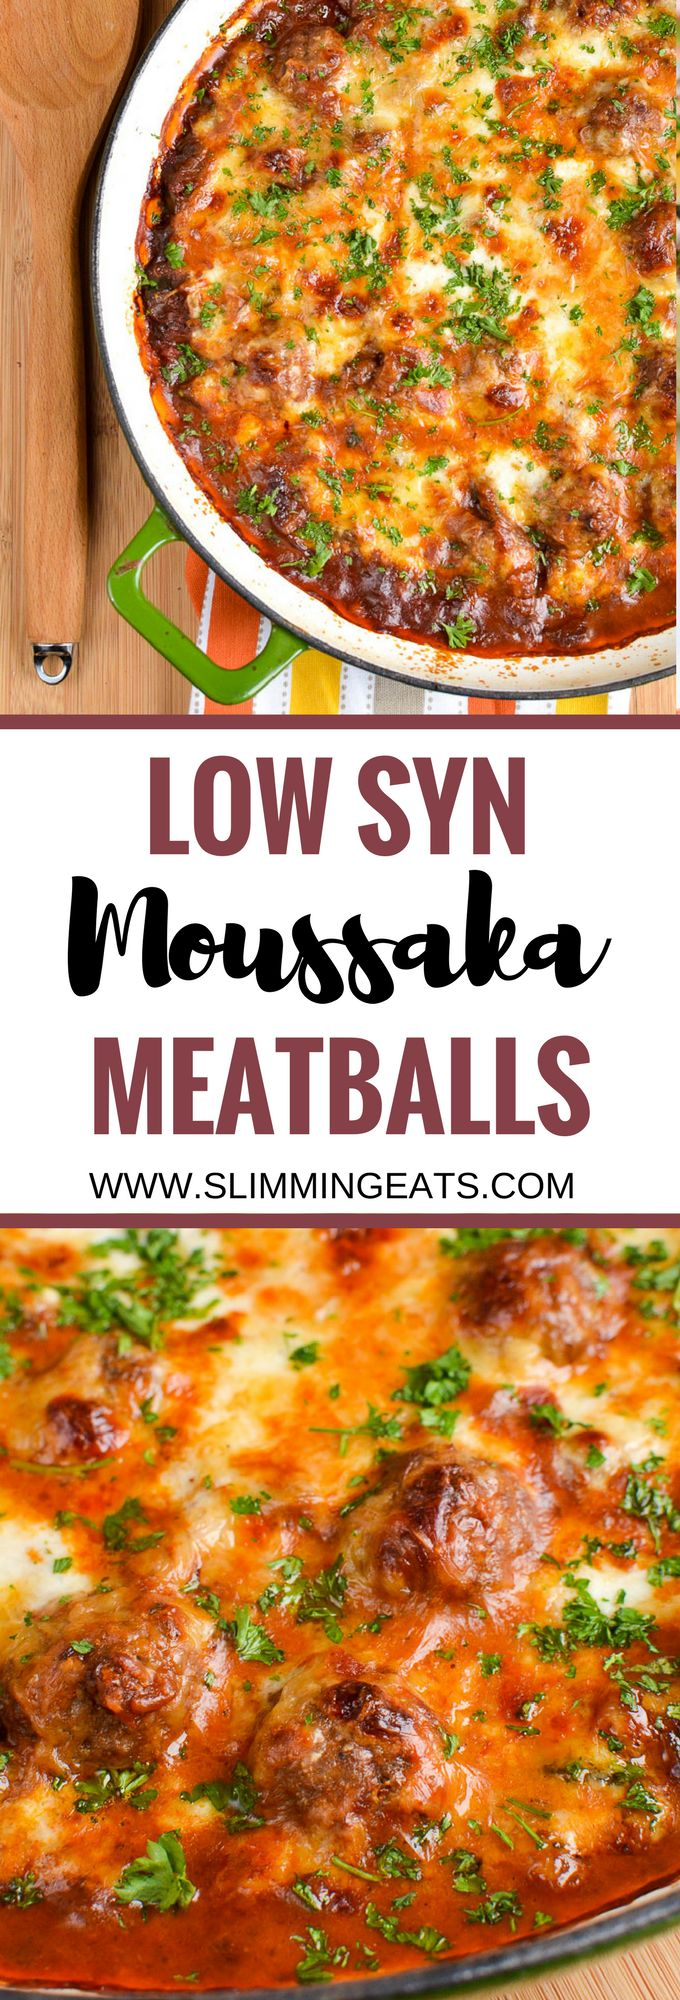 Slimming Eats Low Syn Moussaka Meatballs - gluten free, Slimming World and Weight Watchers friendly